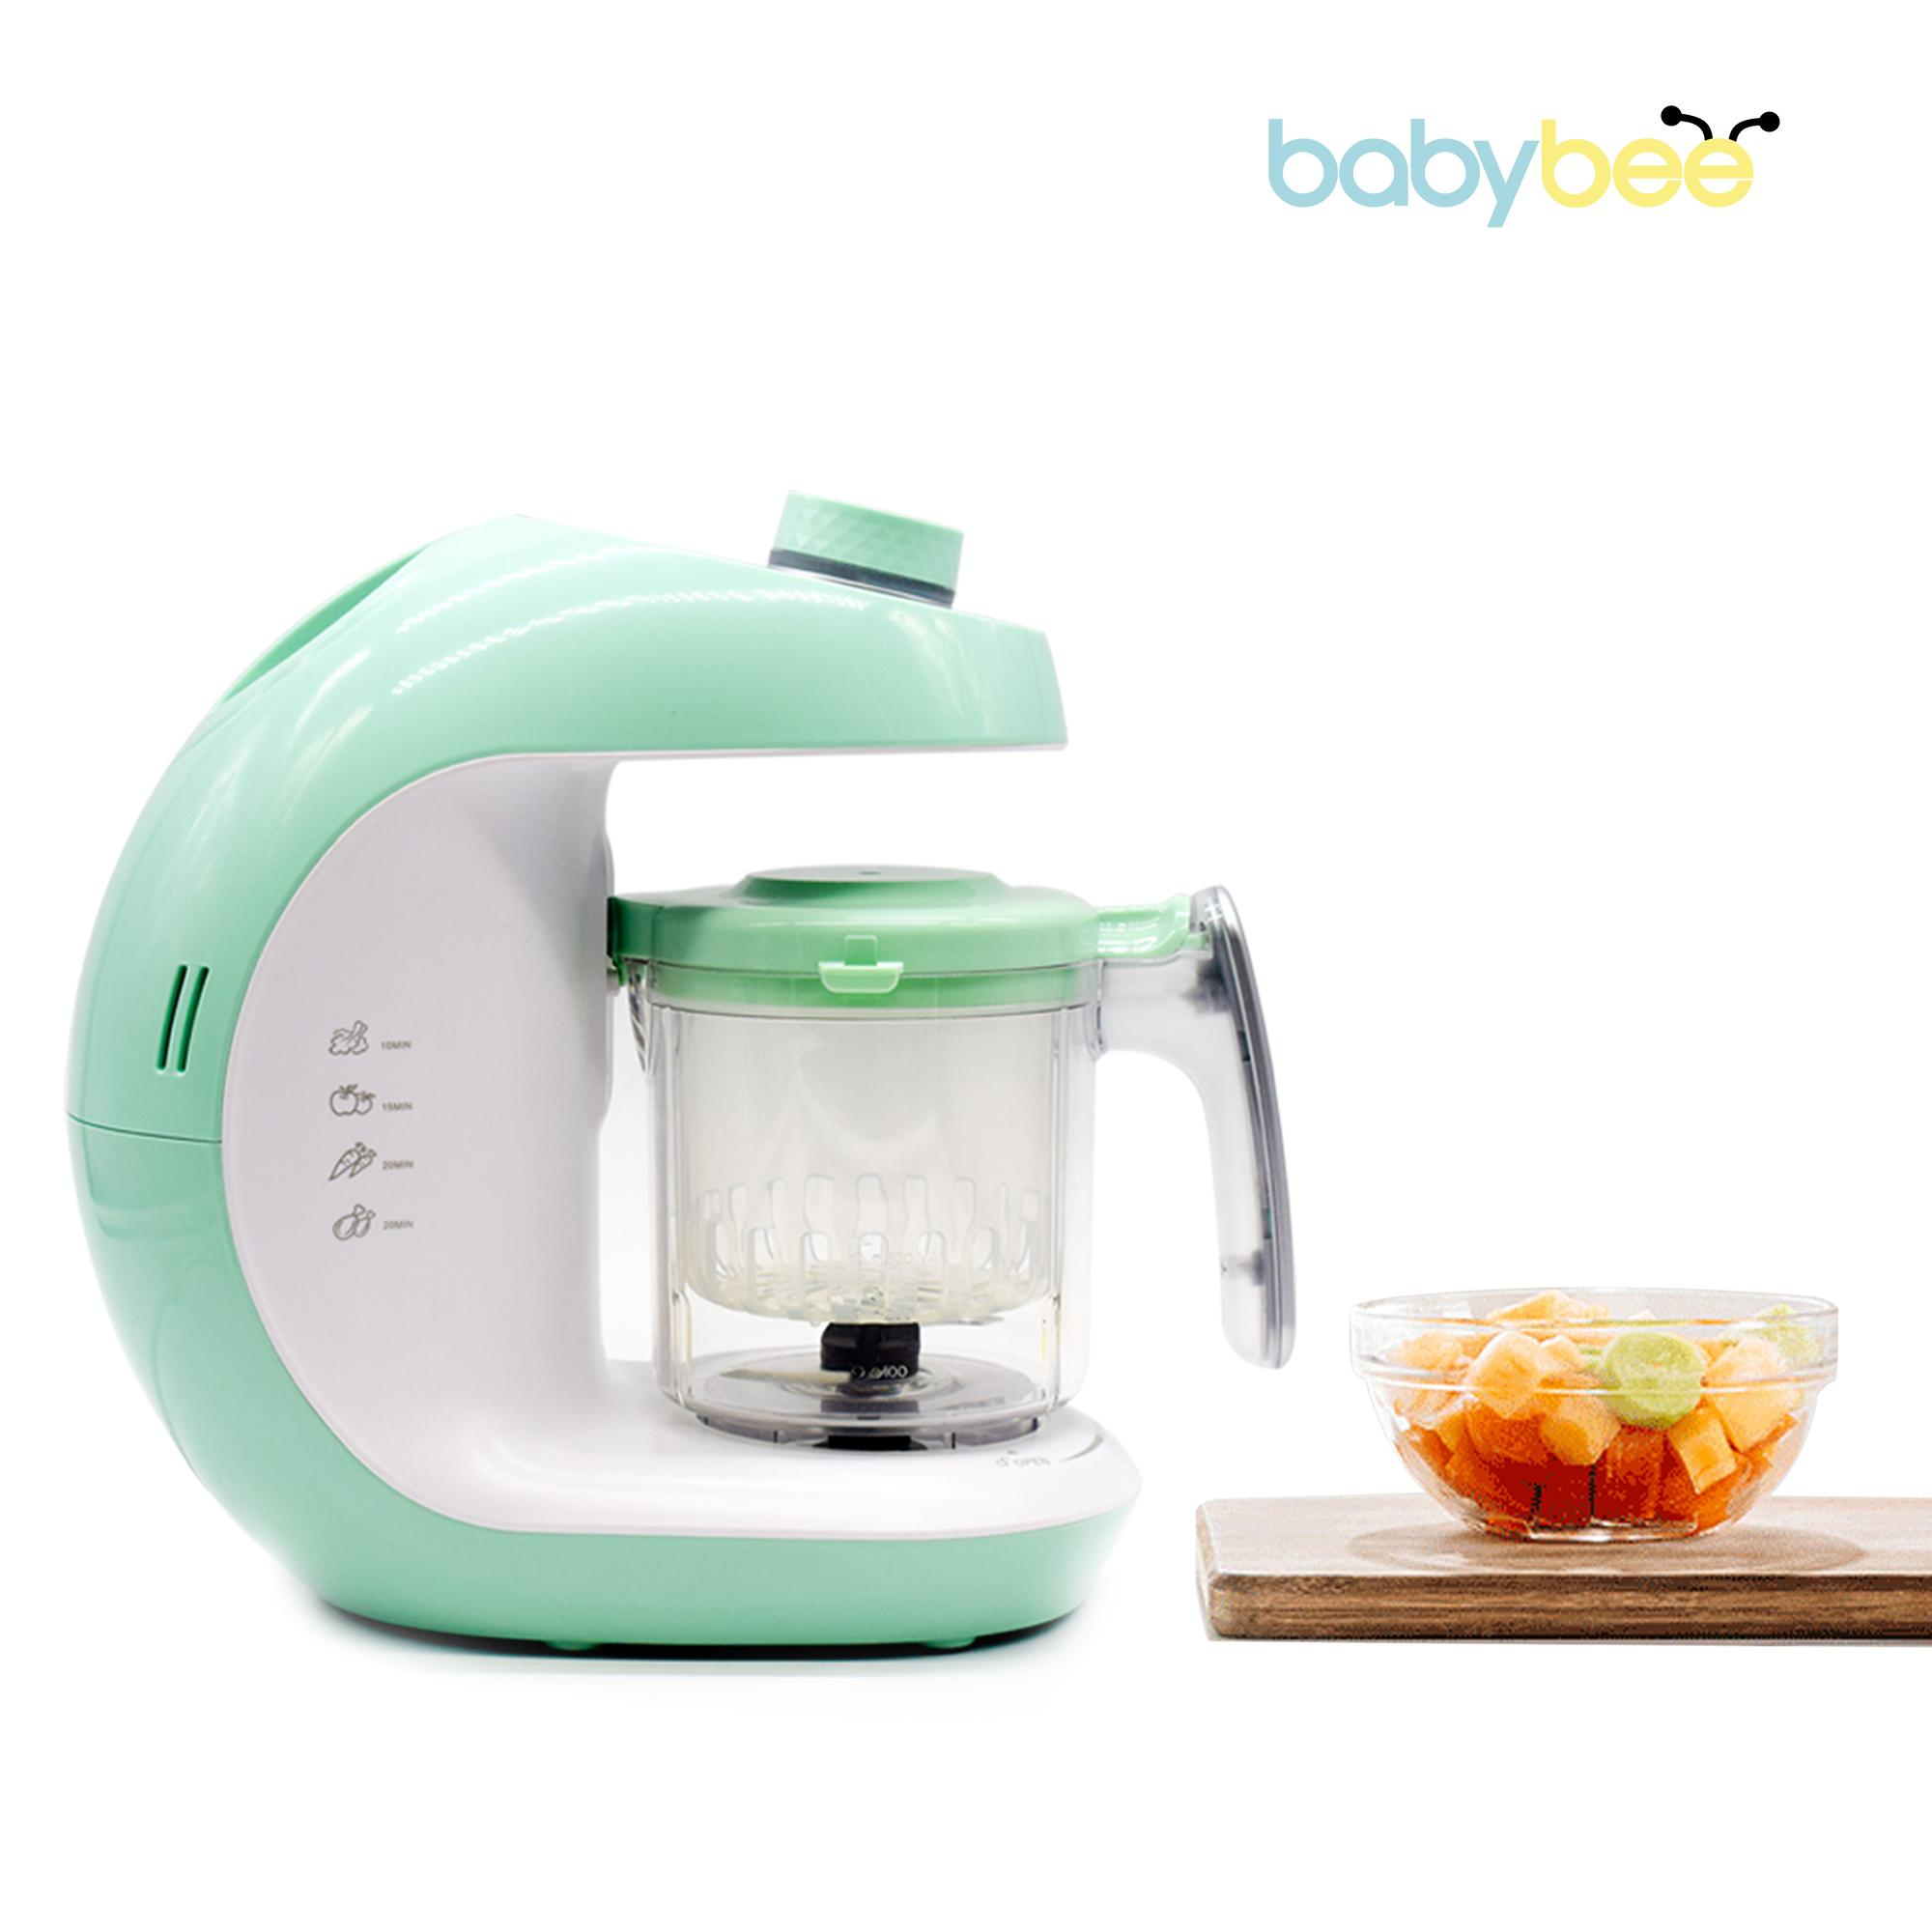 Babybee Food Maker, Steamer and Blenders with Milk Bottle Warmer  image on snachetto.com